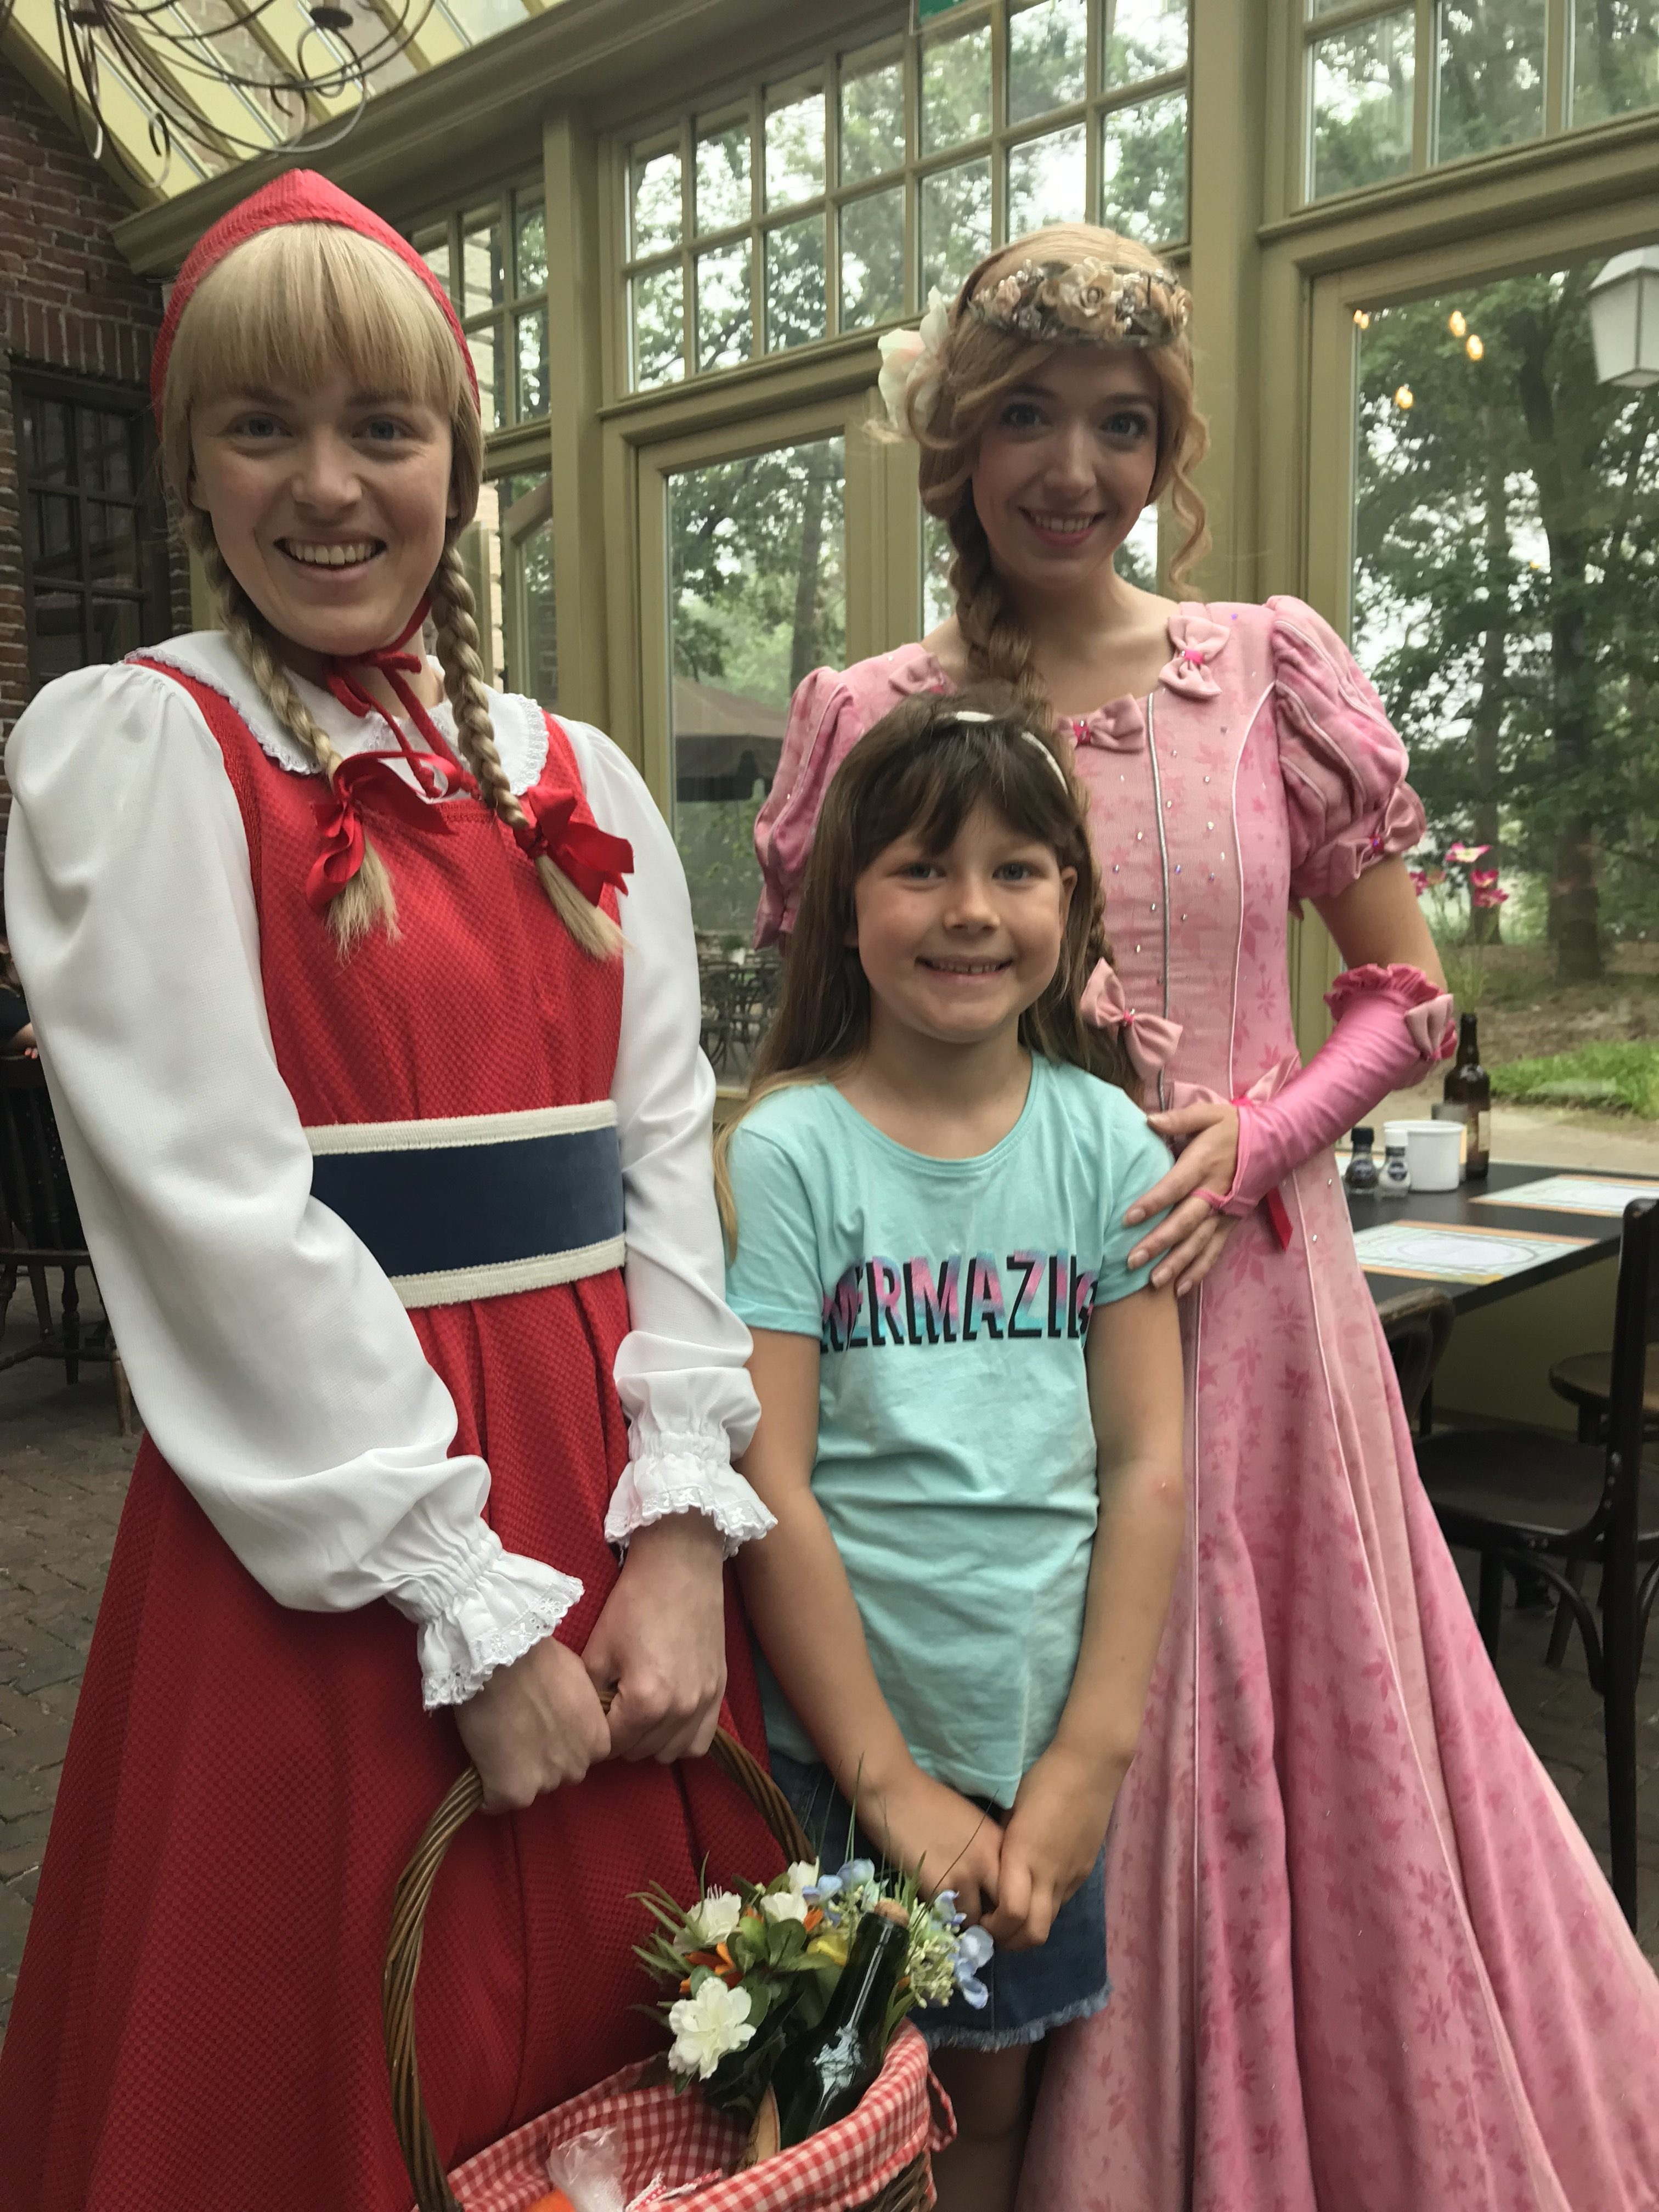 A photo from the Efteling theme park in South Holland, we were at breakfast and two characters from the park came over to talk to her. In the photo she is standing with Red Riding Hood and Sleeping Beauty, both in lovely costumes.